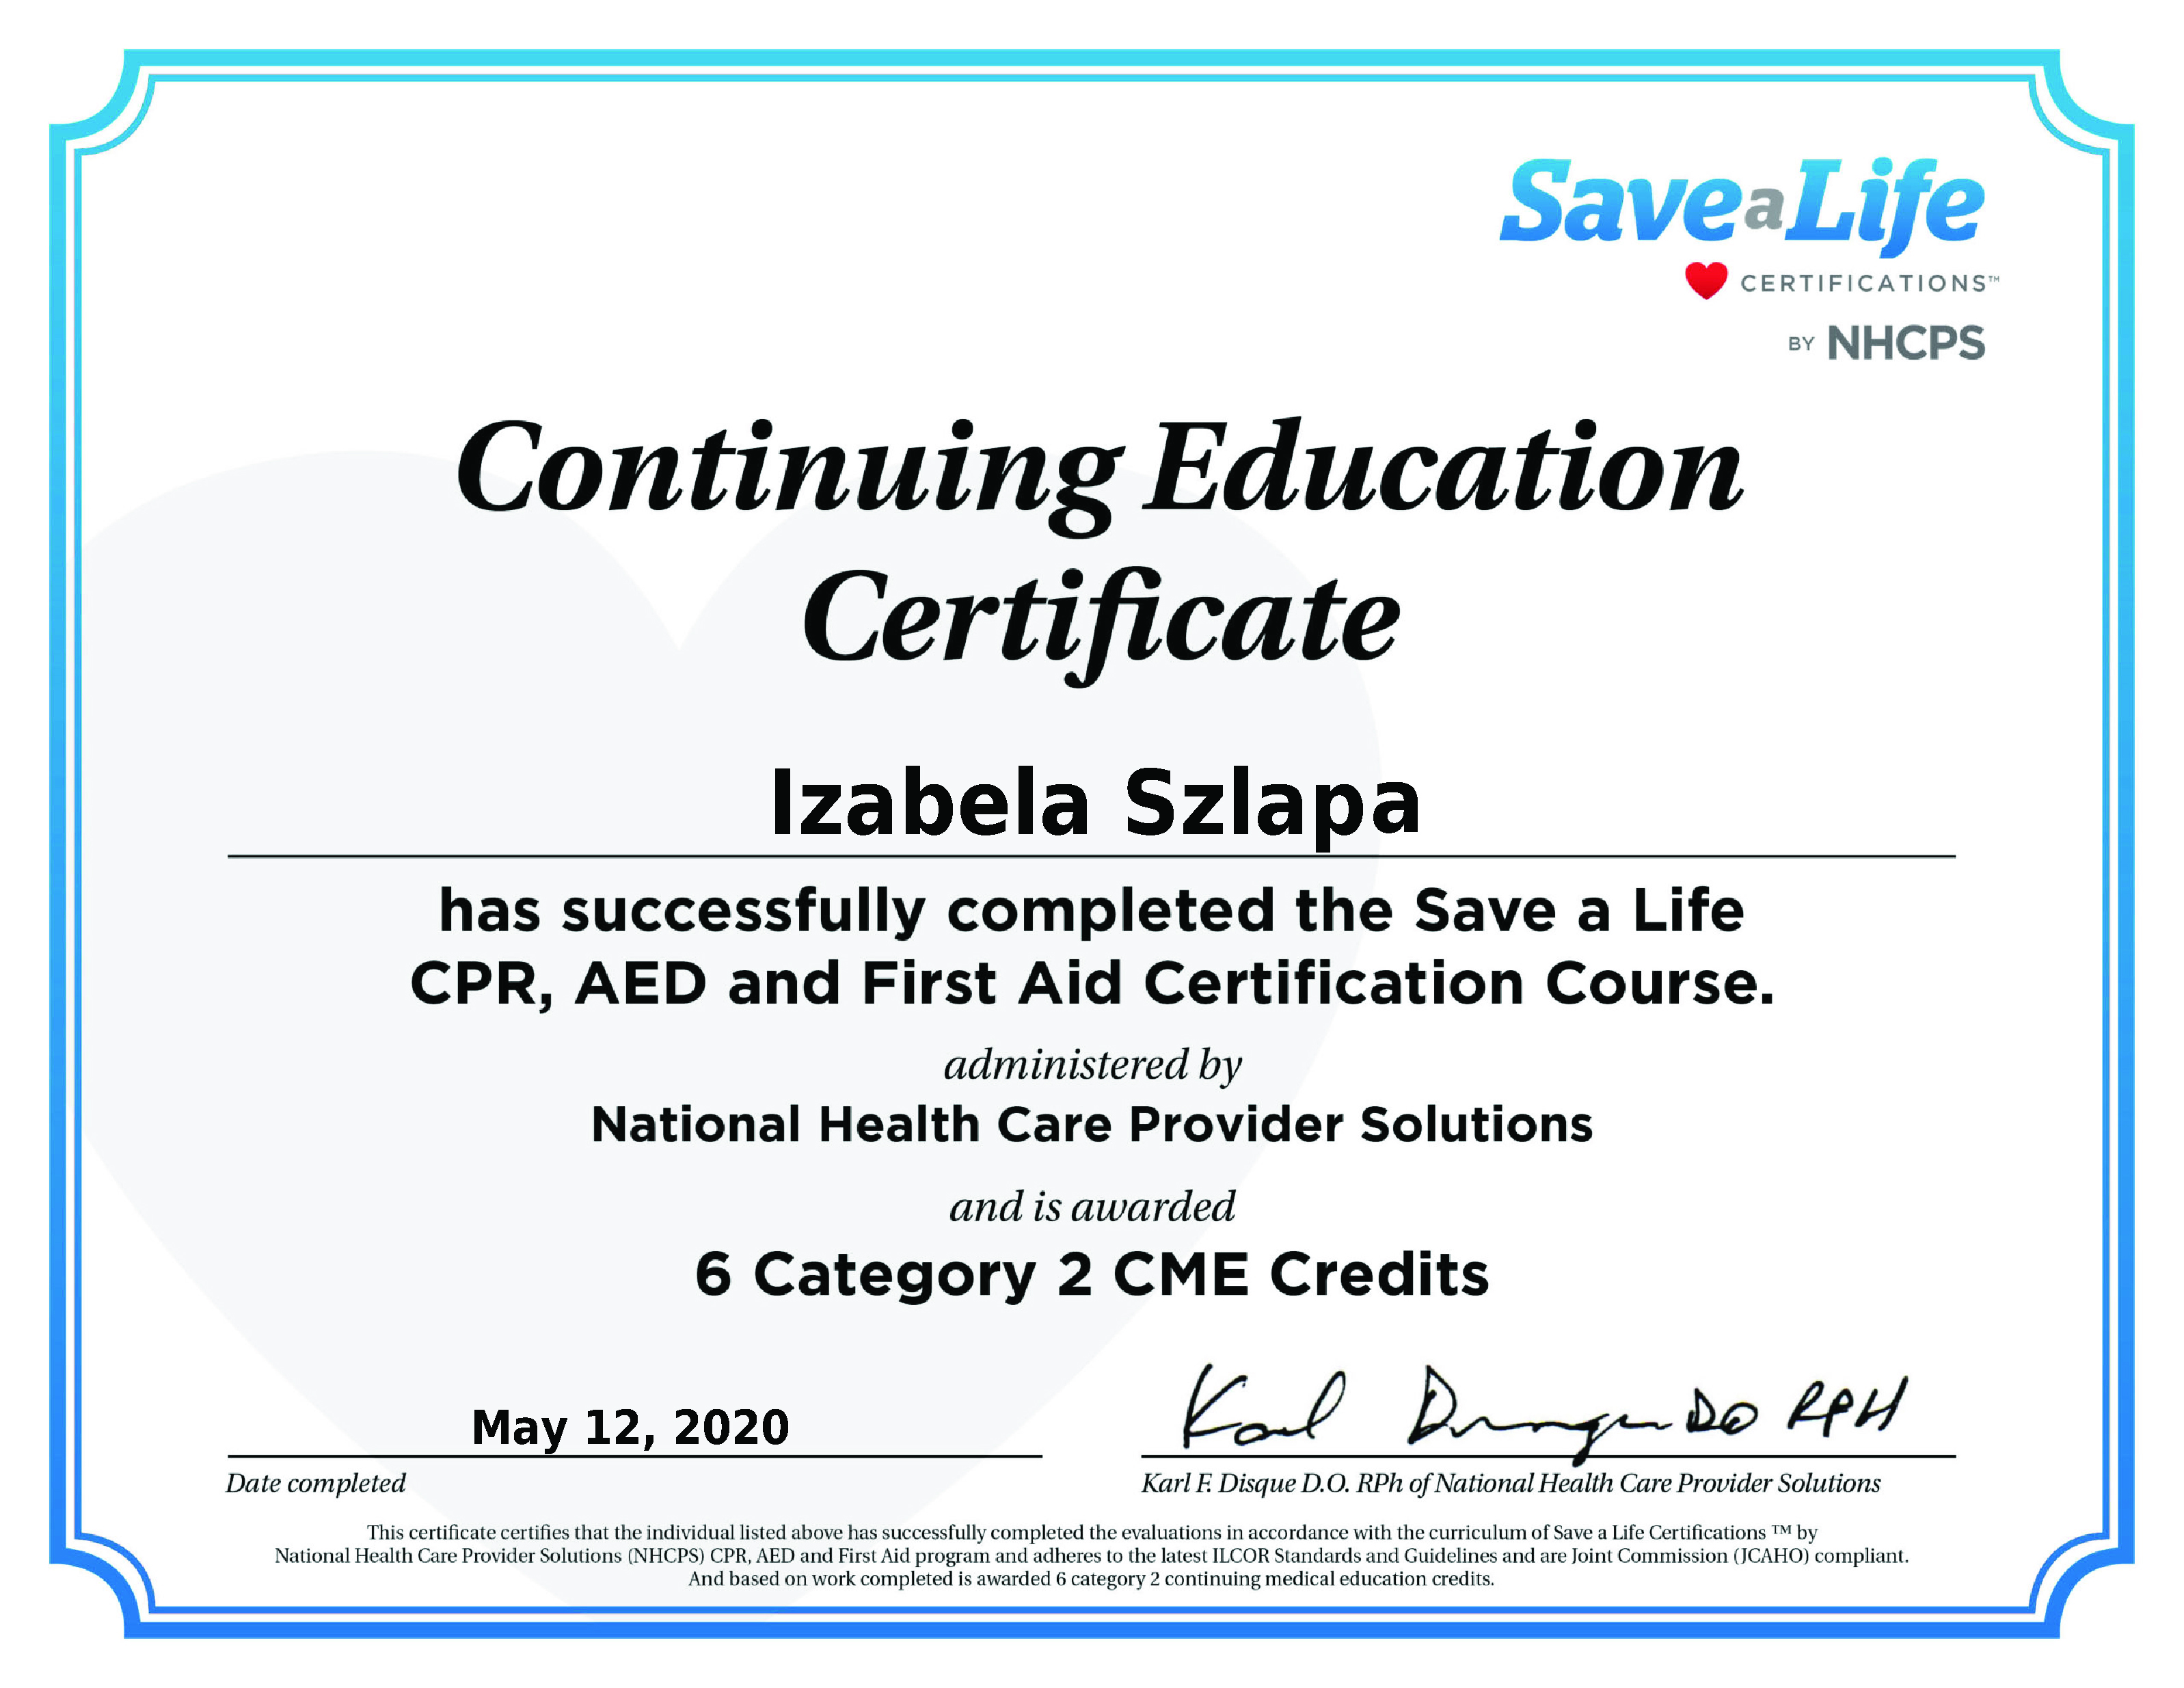 cpr-aed-first-aid-certification-course-c